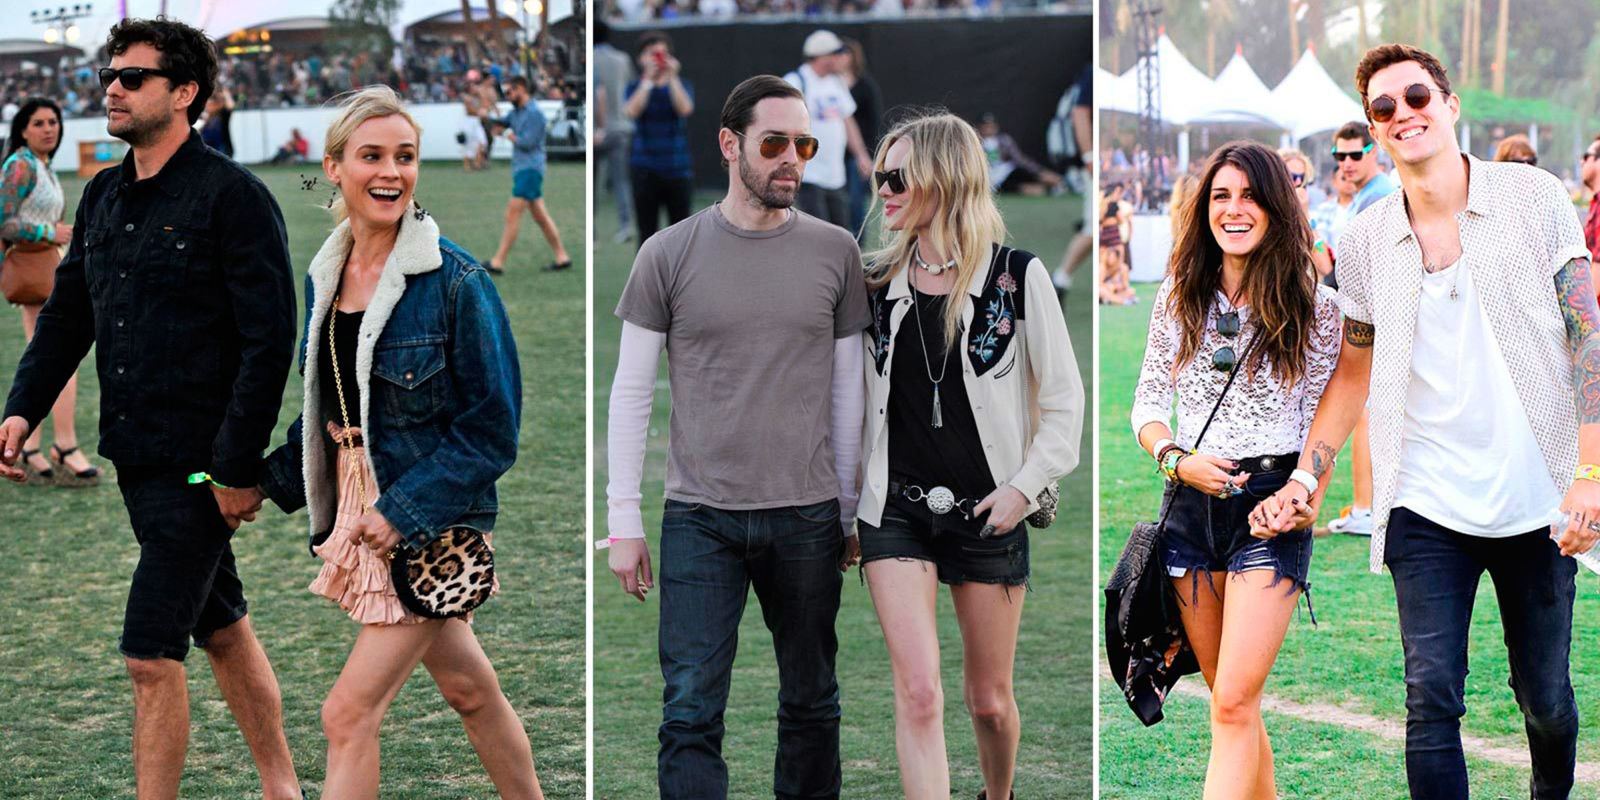 What to wear to Coachella – Outfit ideas for Coachella